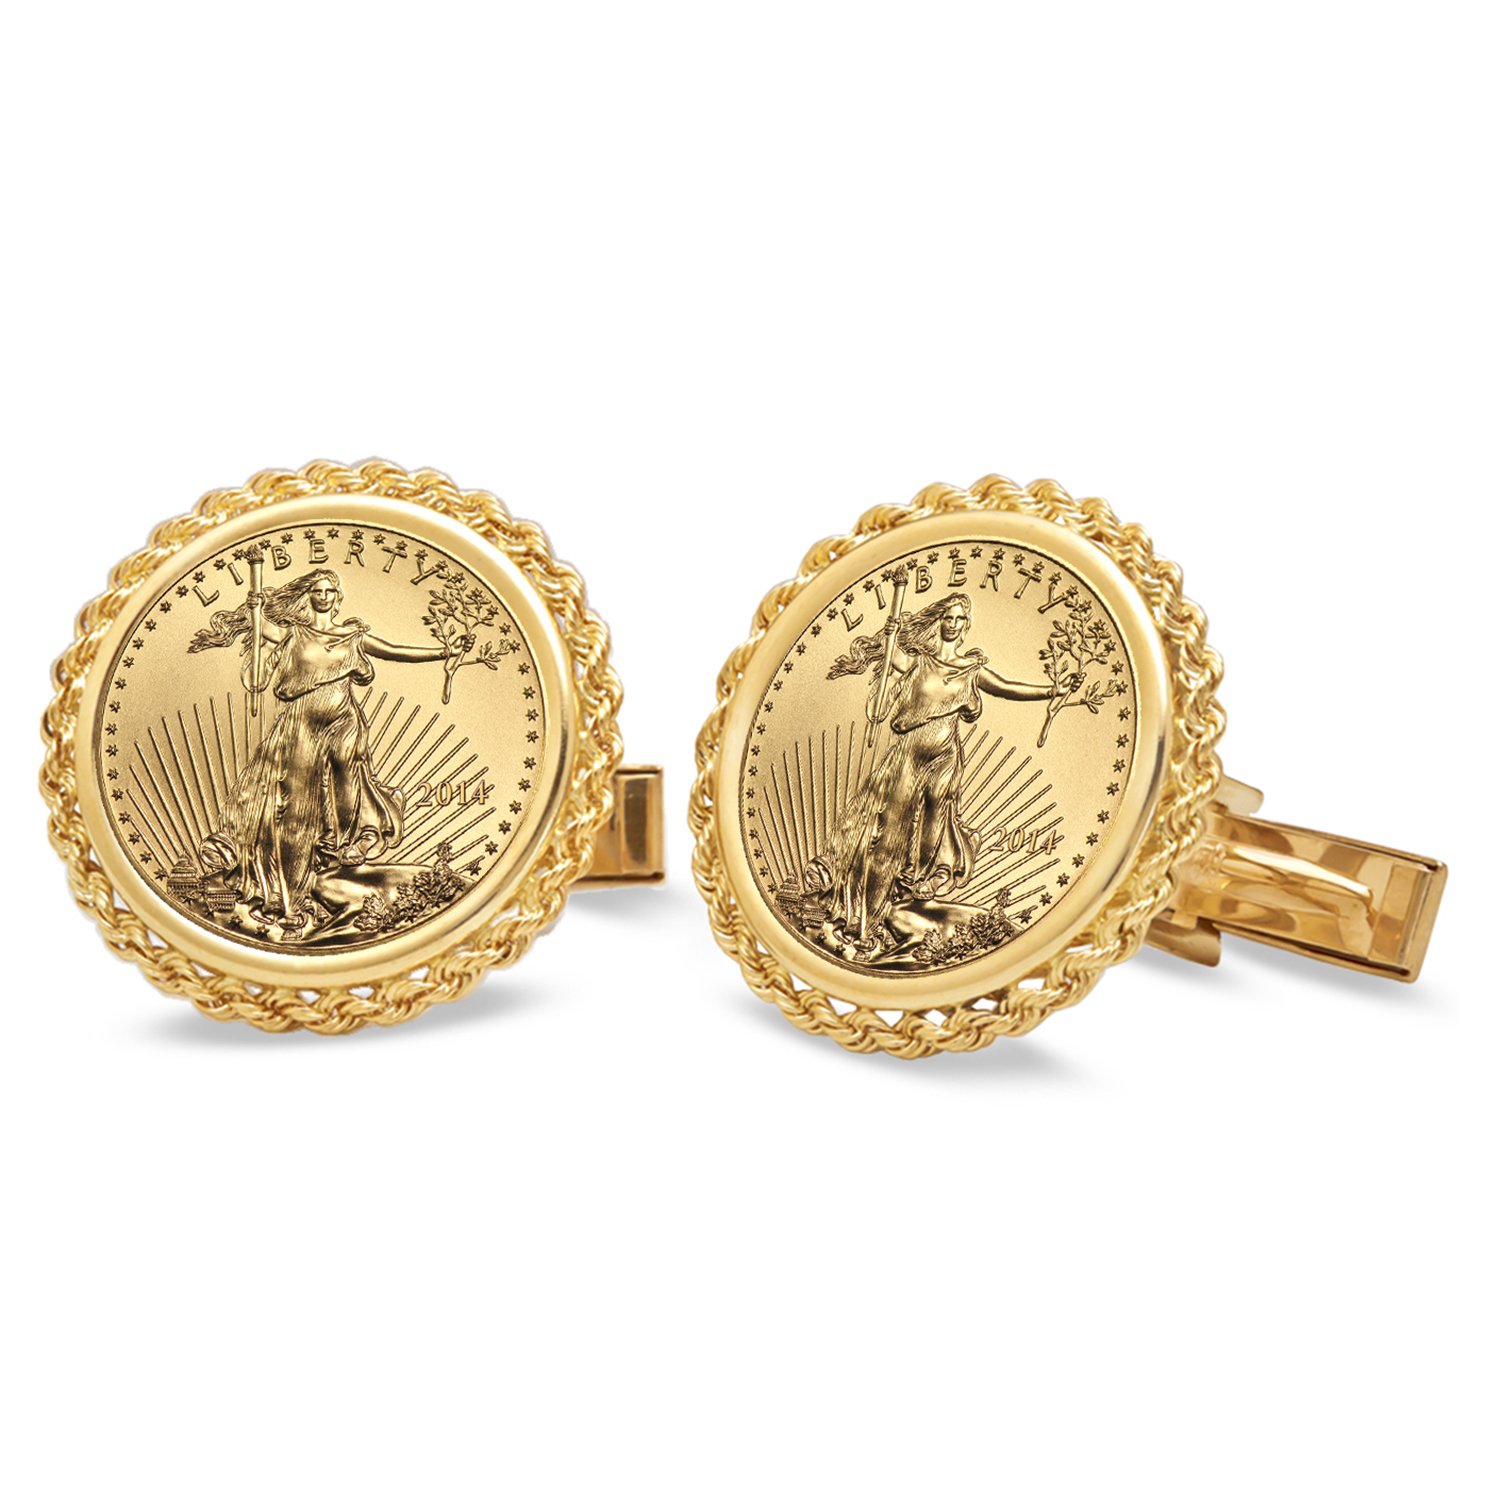 2014 1/10-oz Gold Eagle Cuff Links (Polished Rope)